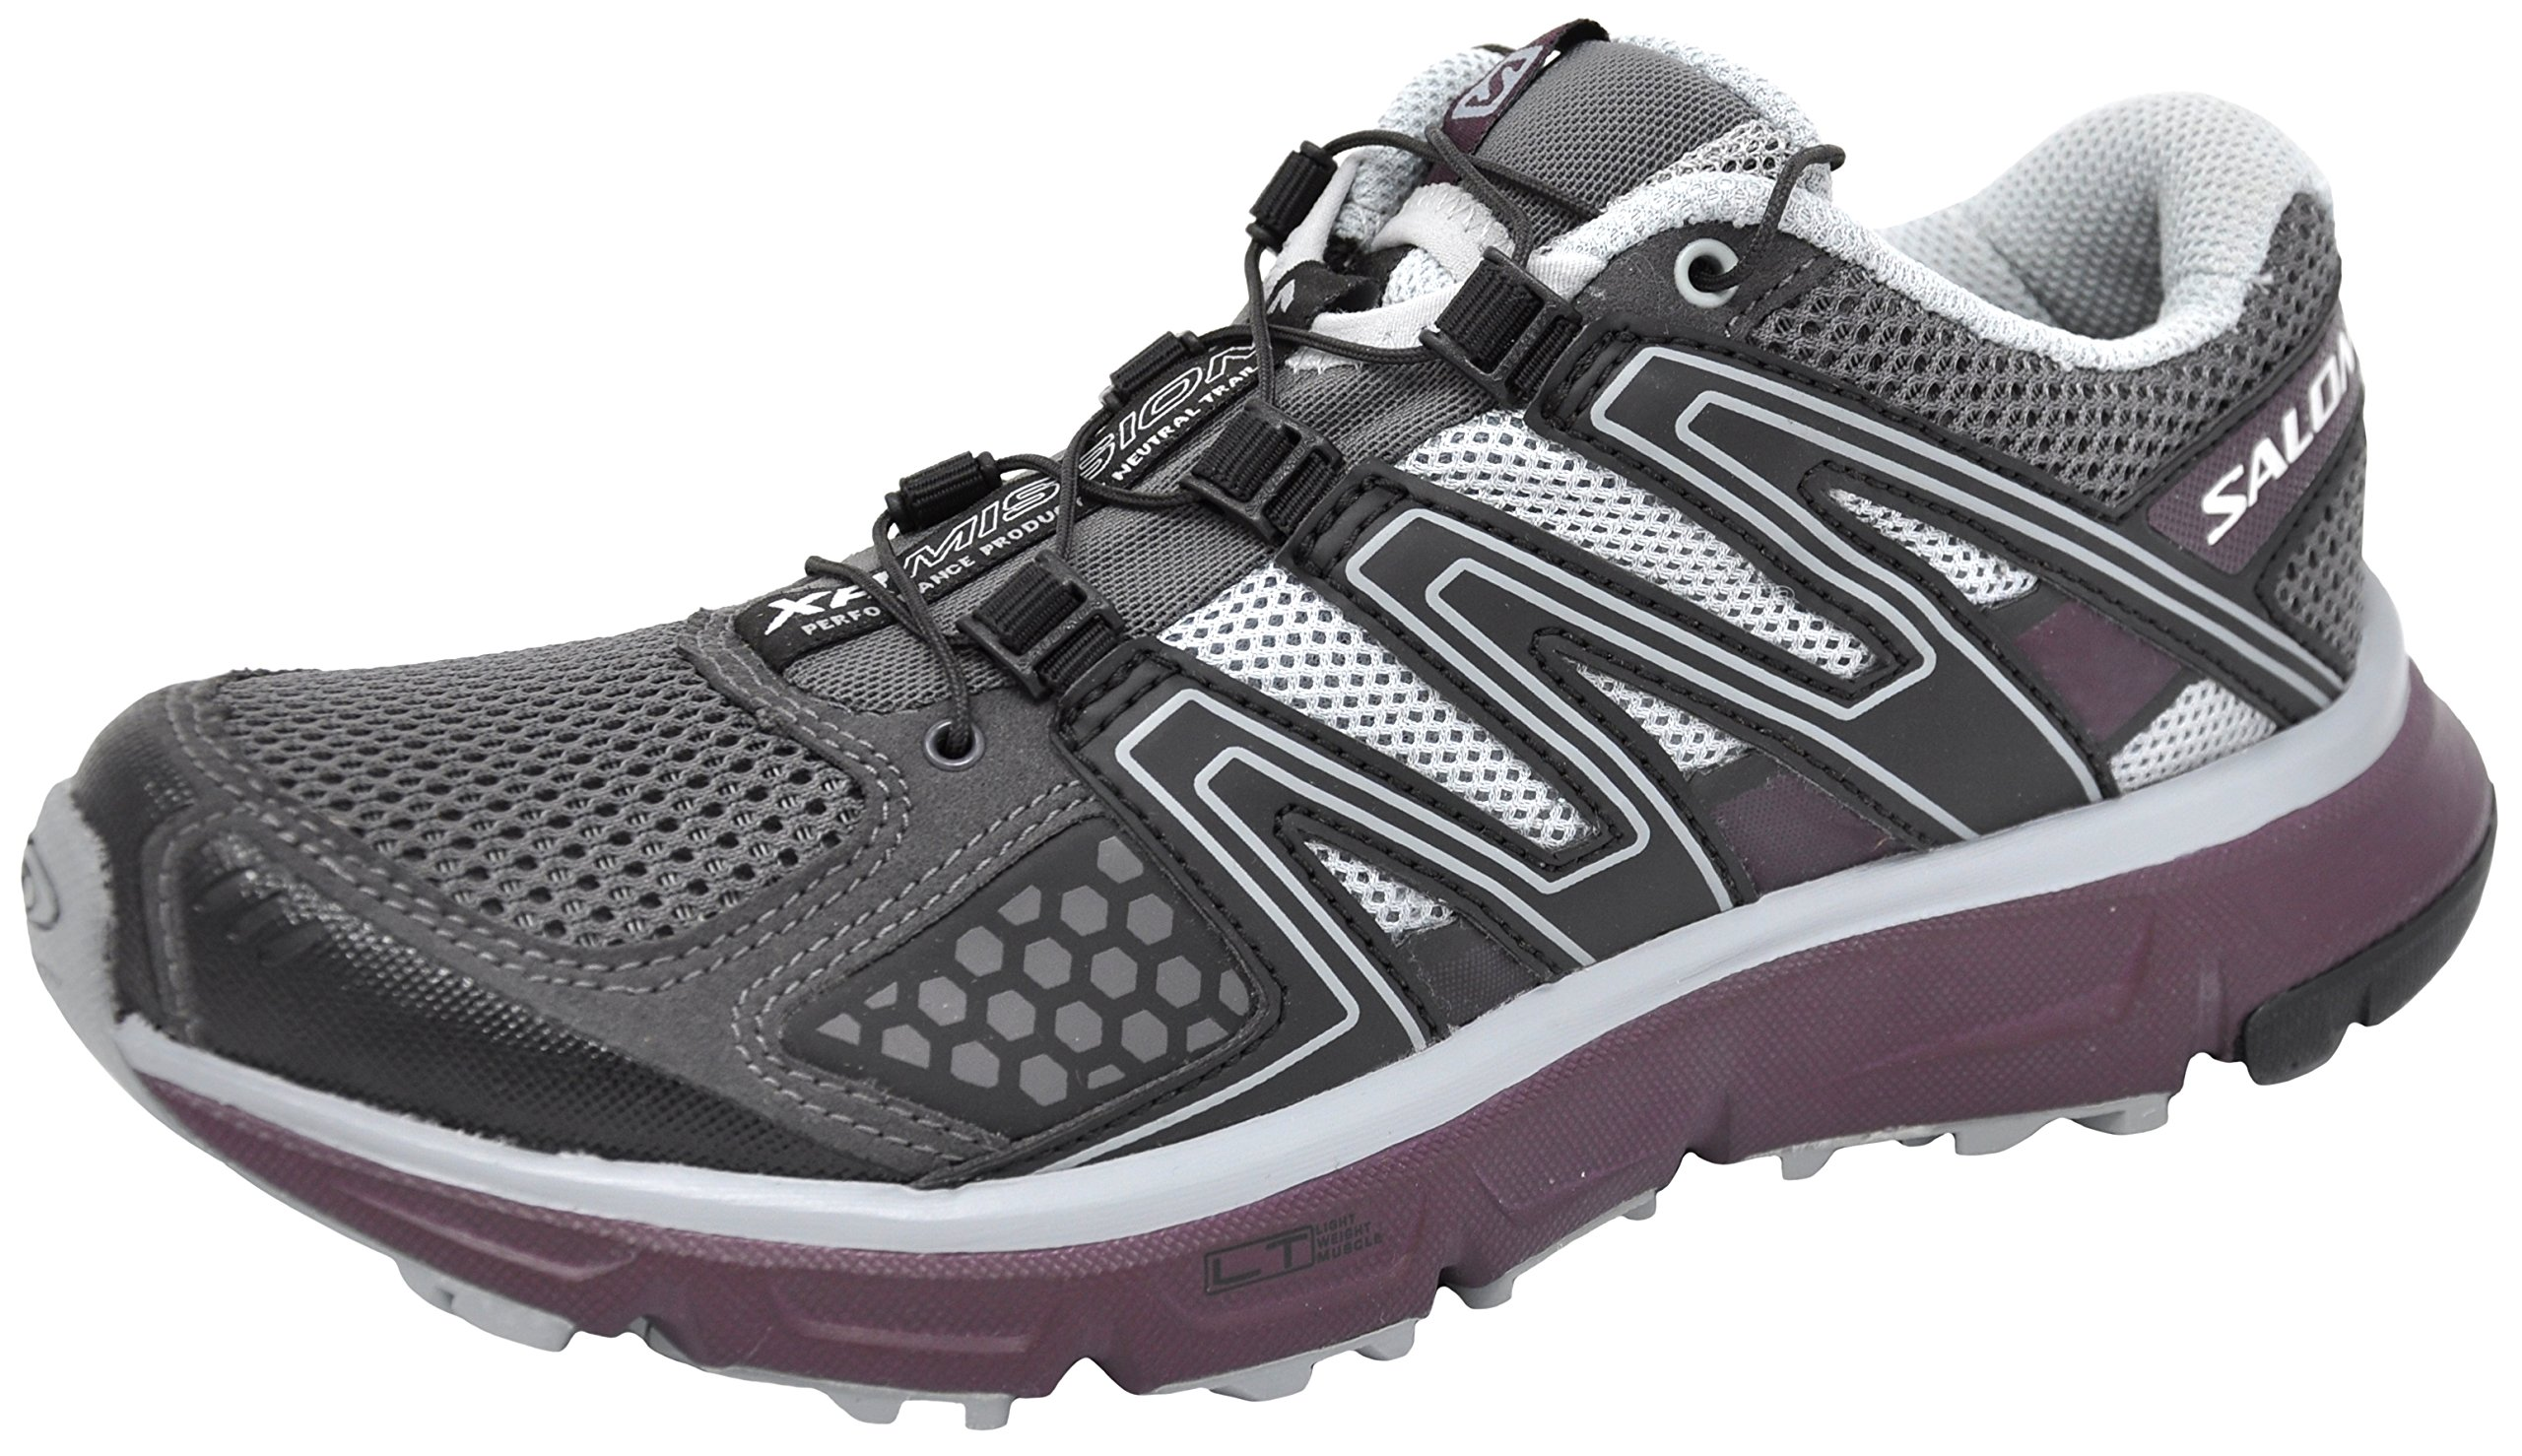 Salomon Women's XR Mission Trail Running Shoe (8 B(M) US, Magnent/Black/Purple) by SALOMON